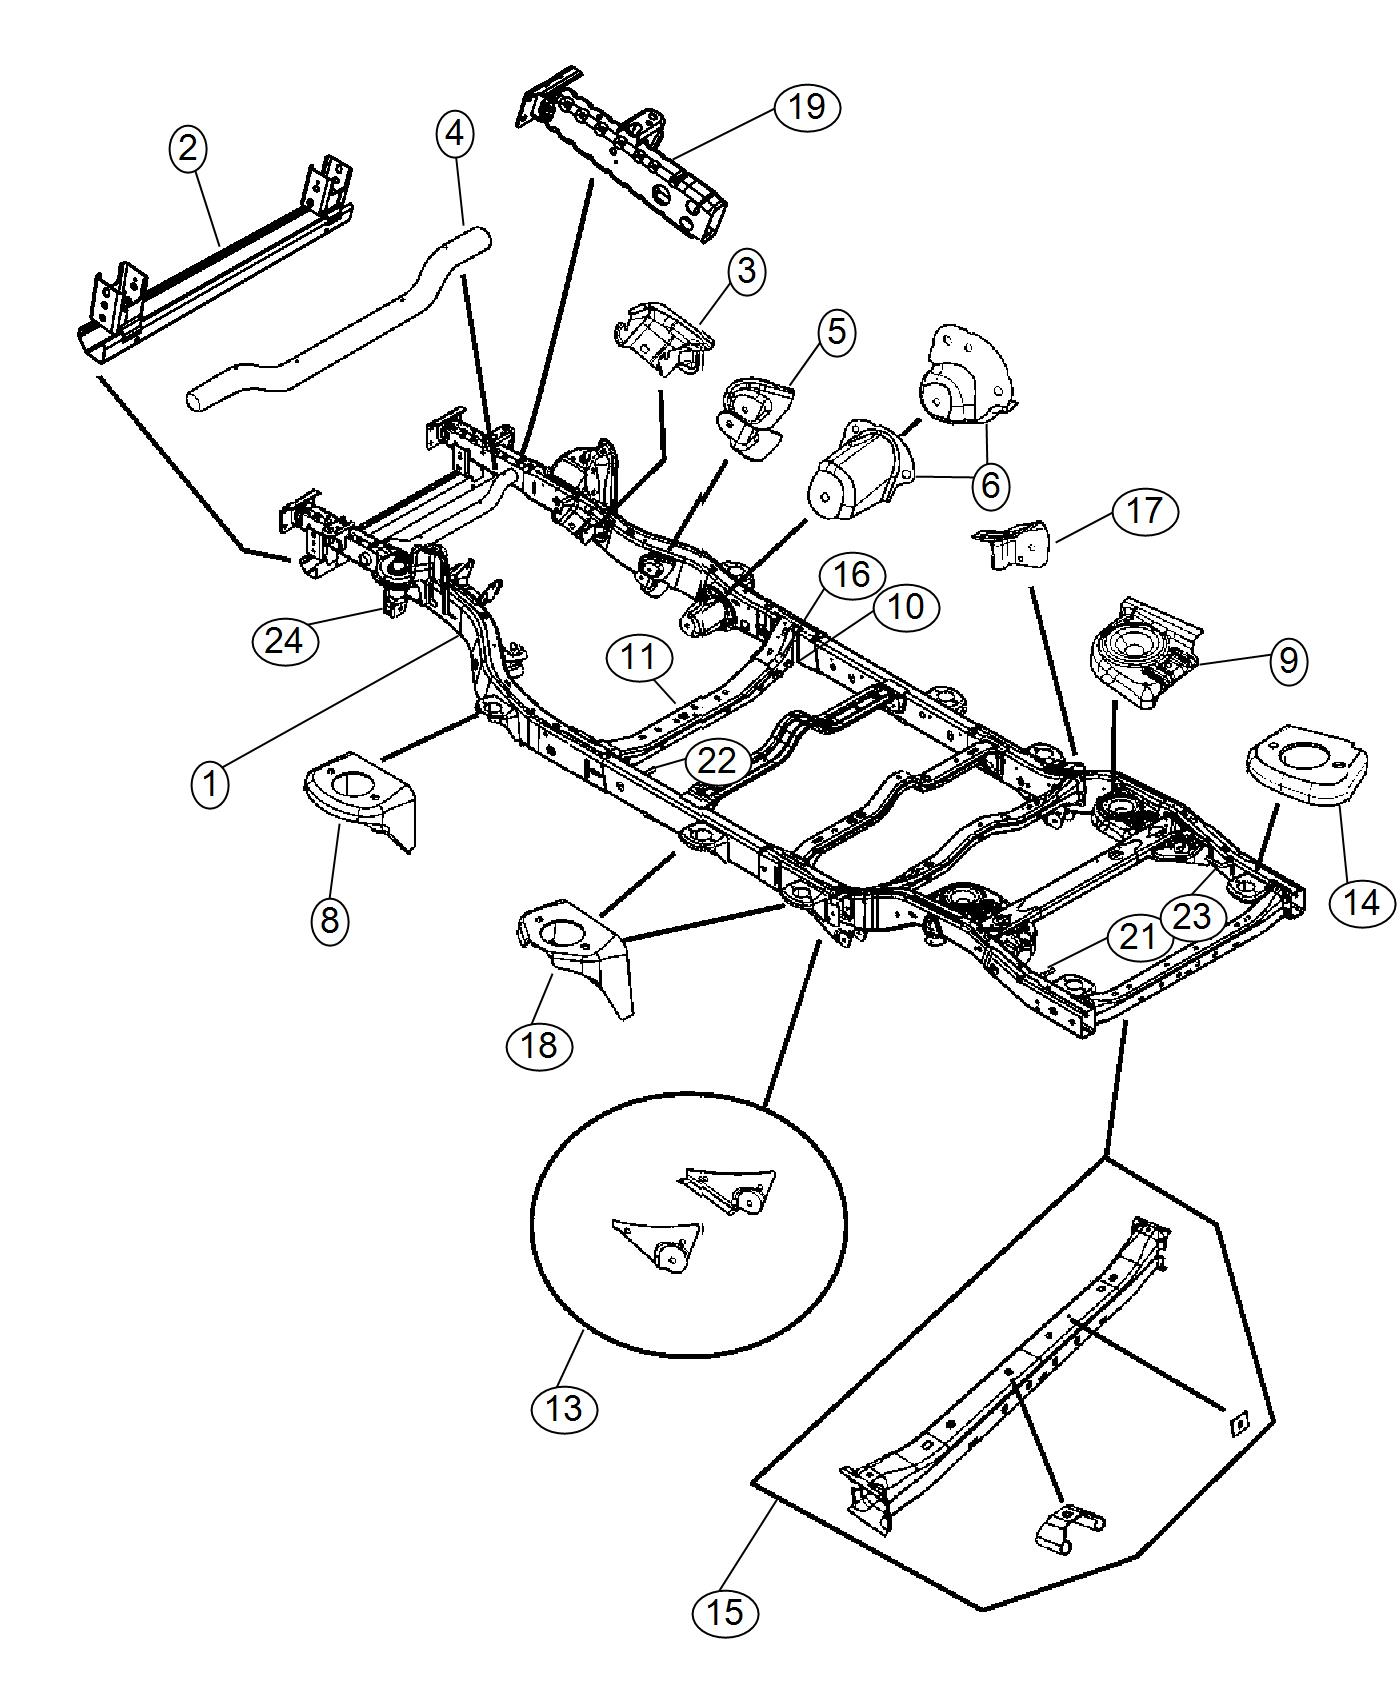 tags: #1995 jeep wrangler engine diagram#jeep crank sensor location#jeep yj  vacuum diagram#1989 jeep cherokee engine diagram#2000 jeep wrangler engine